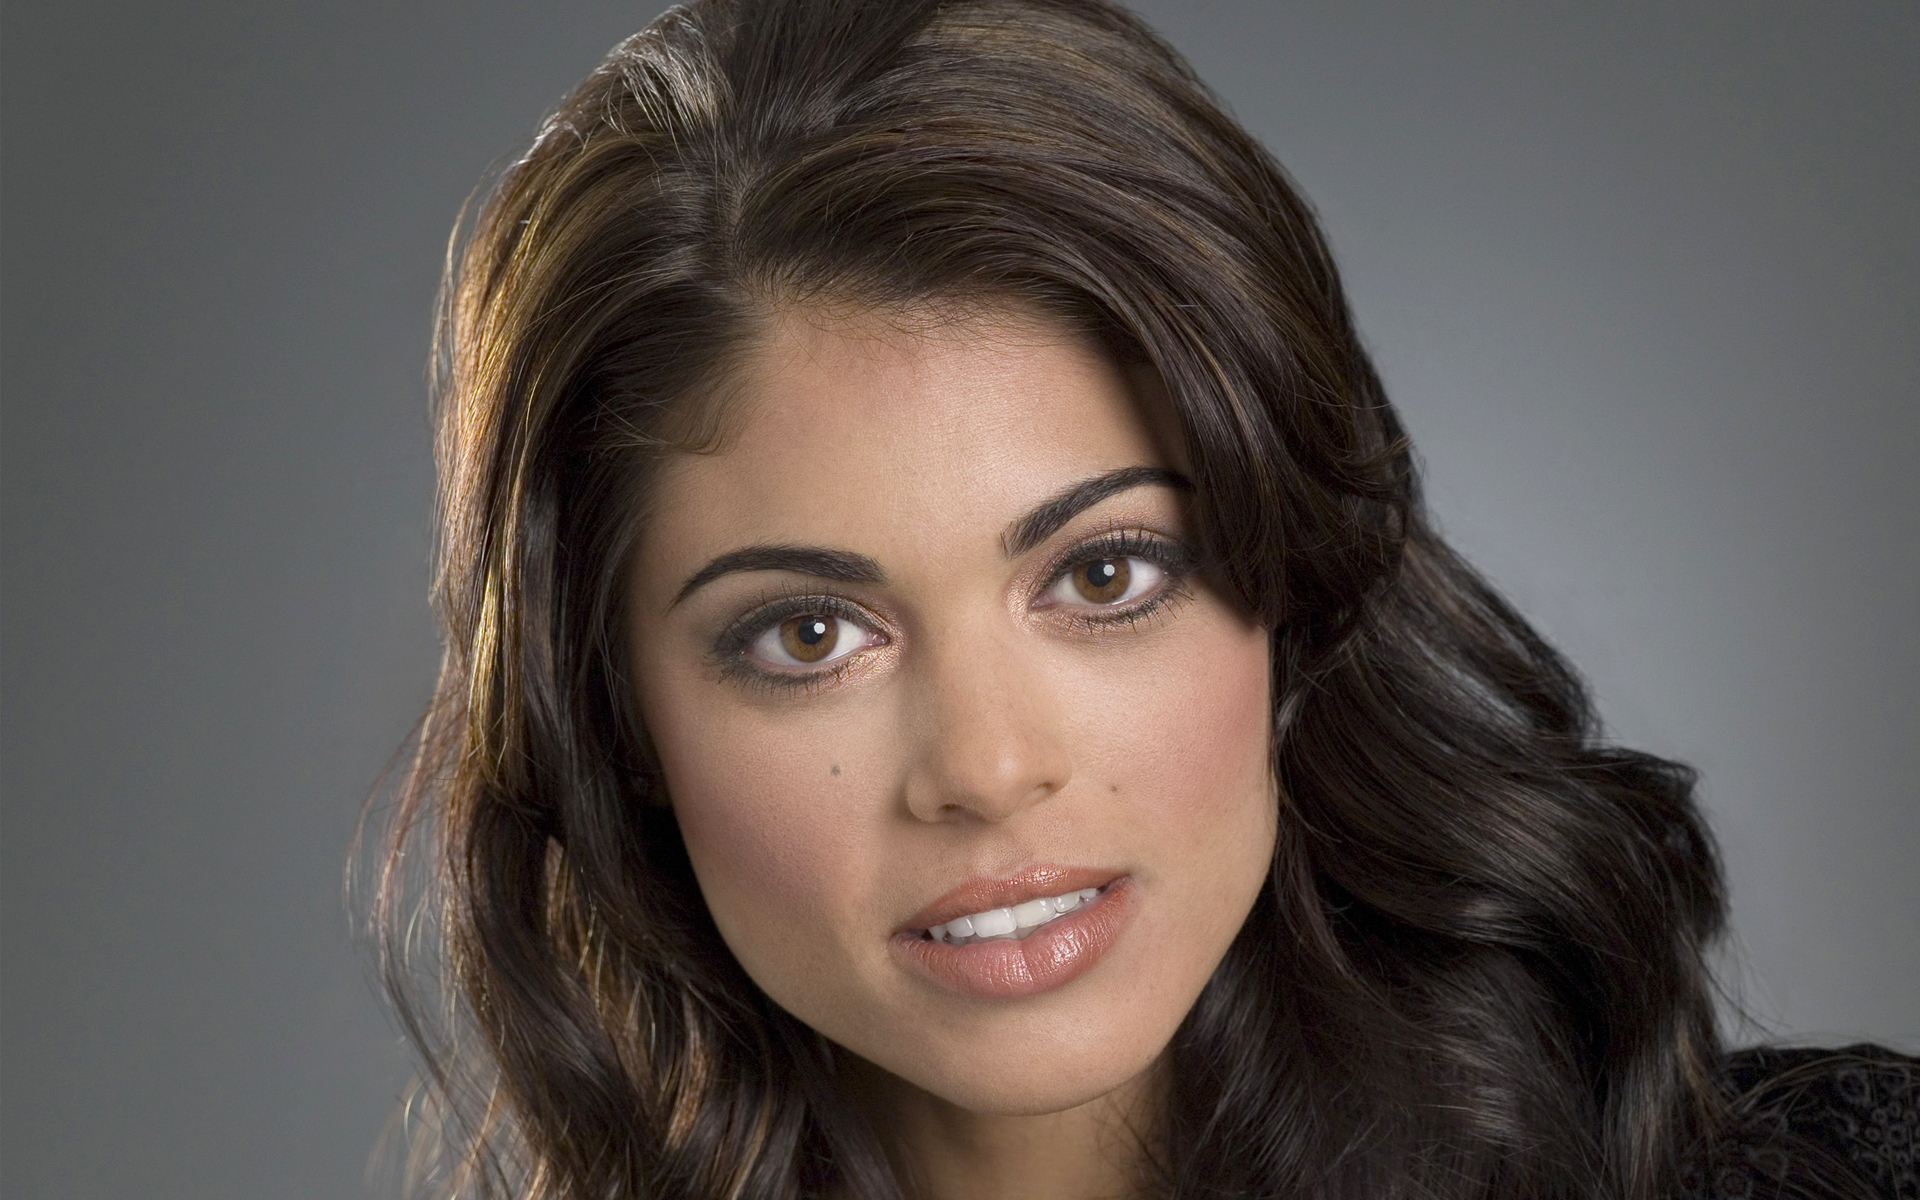 Good Quality Lindsay Hartley HD Wallpaper Wallpaper